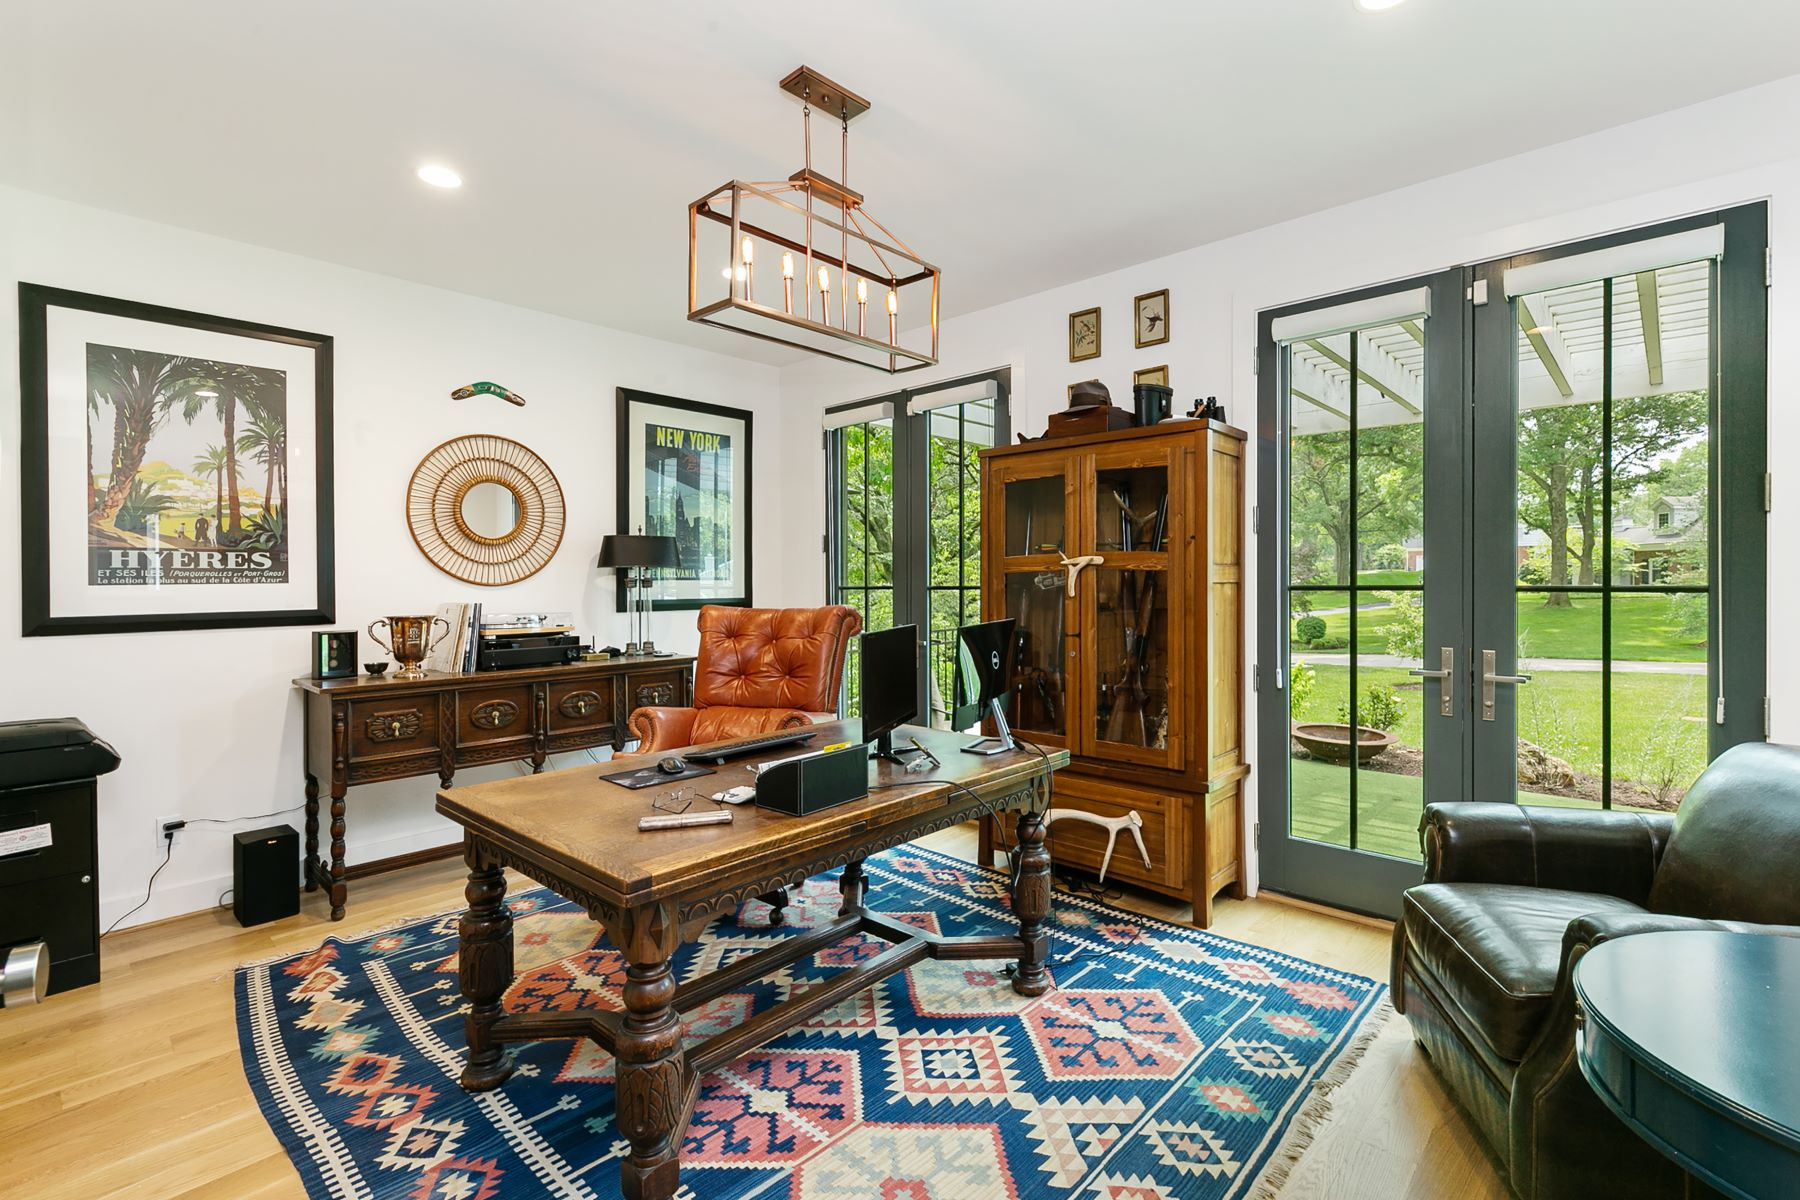 Additional photo for property listing at Modern Farmhouse Custom Built for a Life of Elegance 731 Laurel Oak Drive Frontenac, Missouri 63131 United States